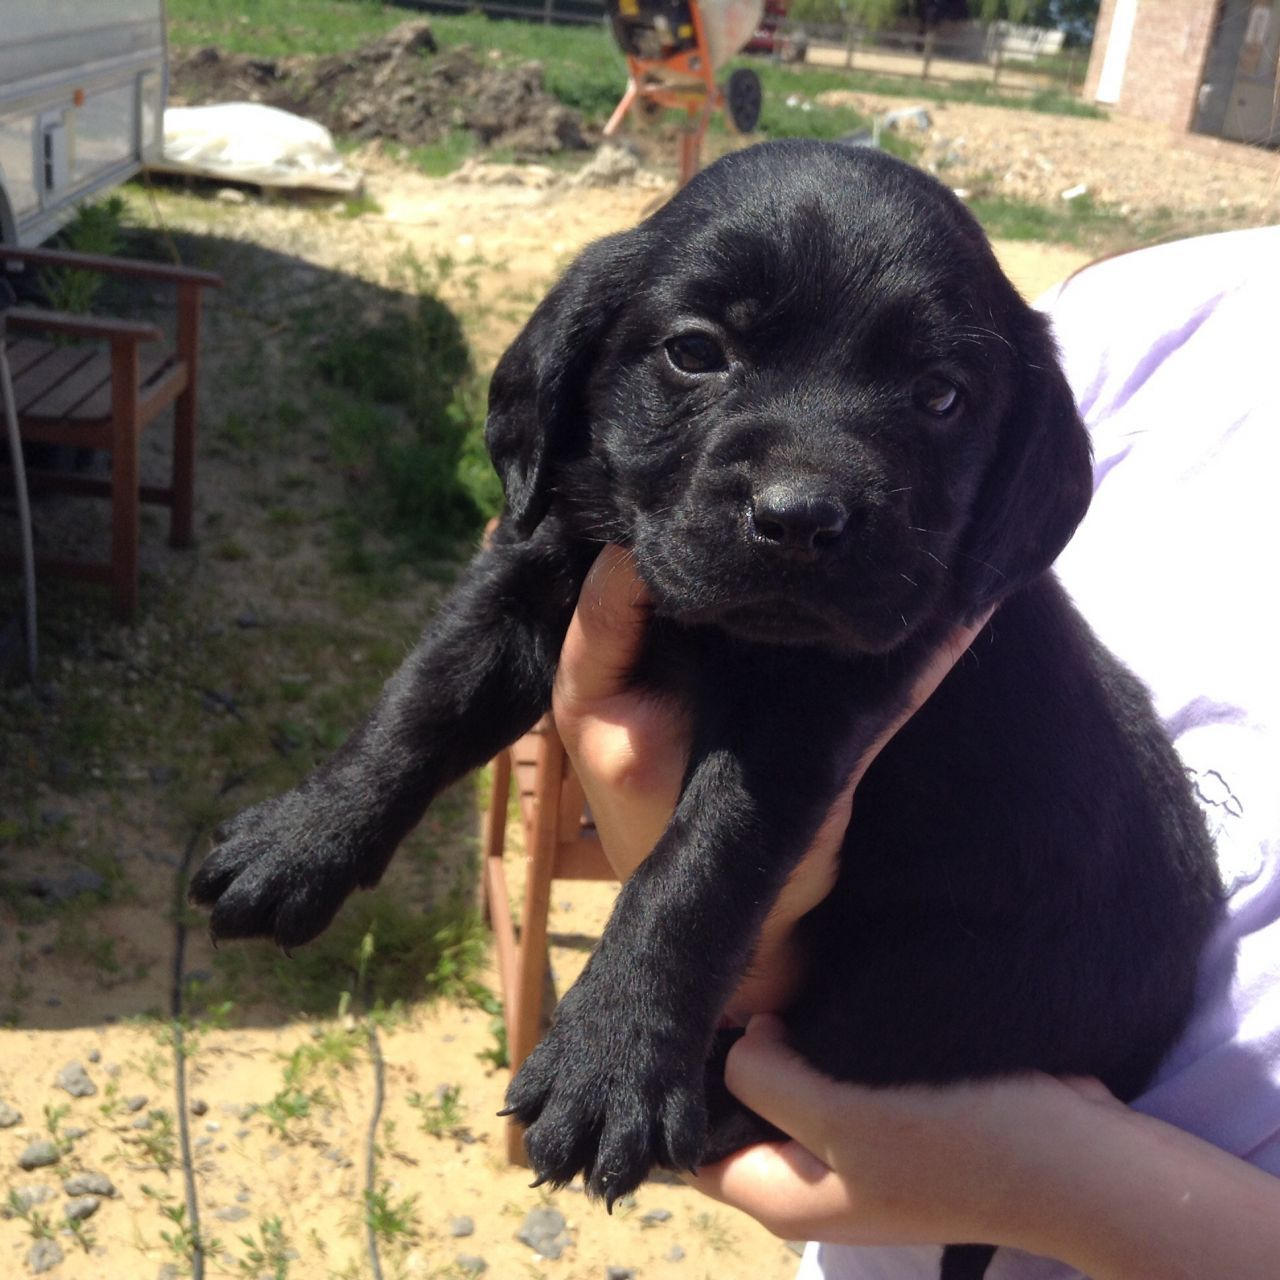 3 Adorable Cockerdor Pups For Sale Puppies For Sale Pup